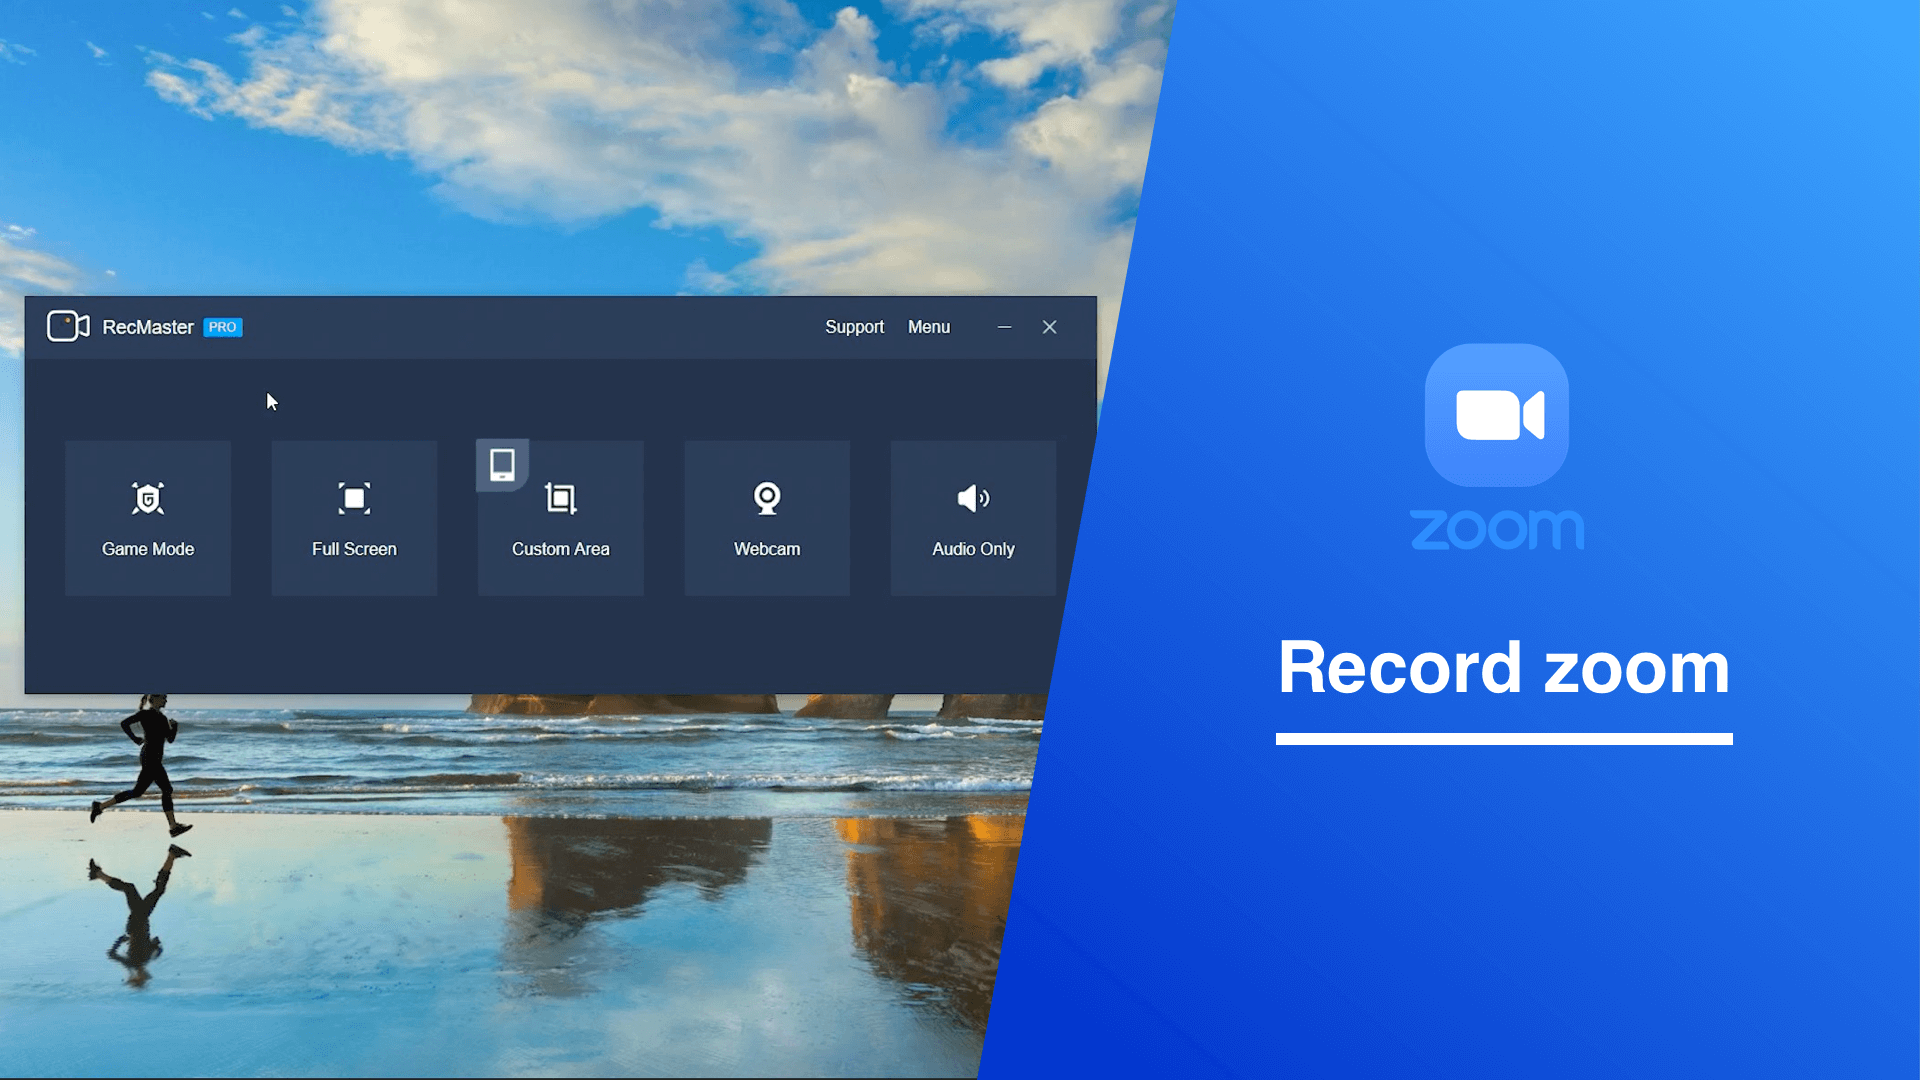 How to record online meeting from Zoom